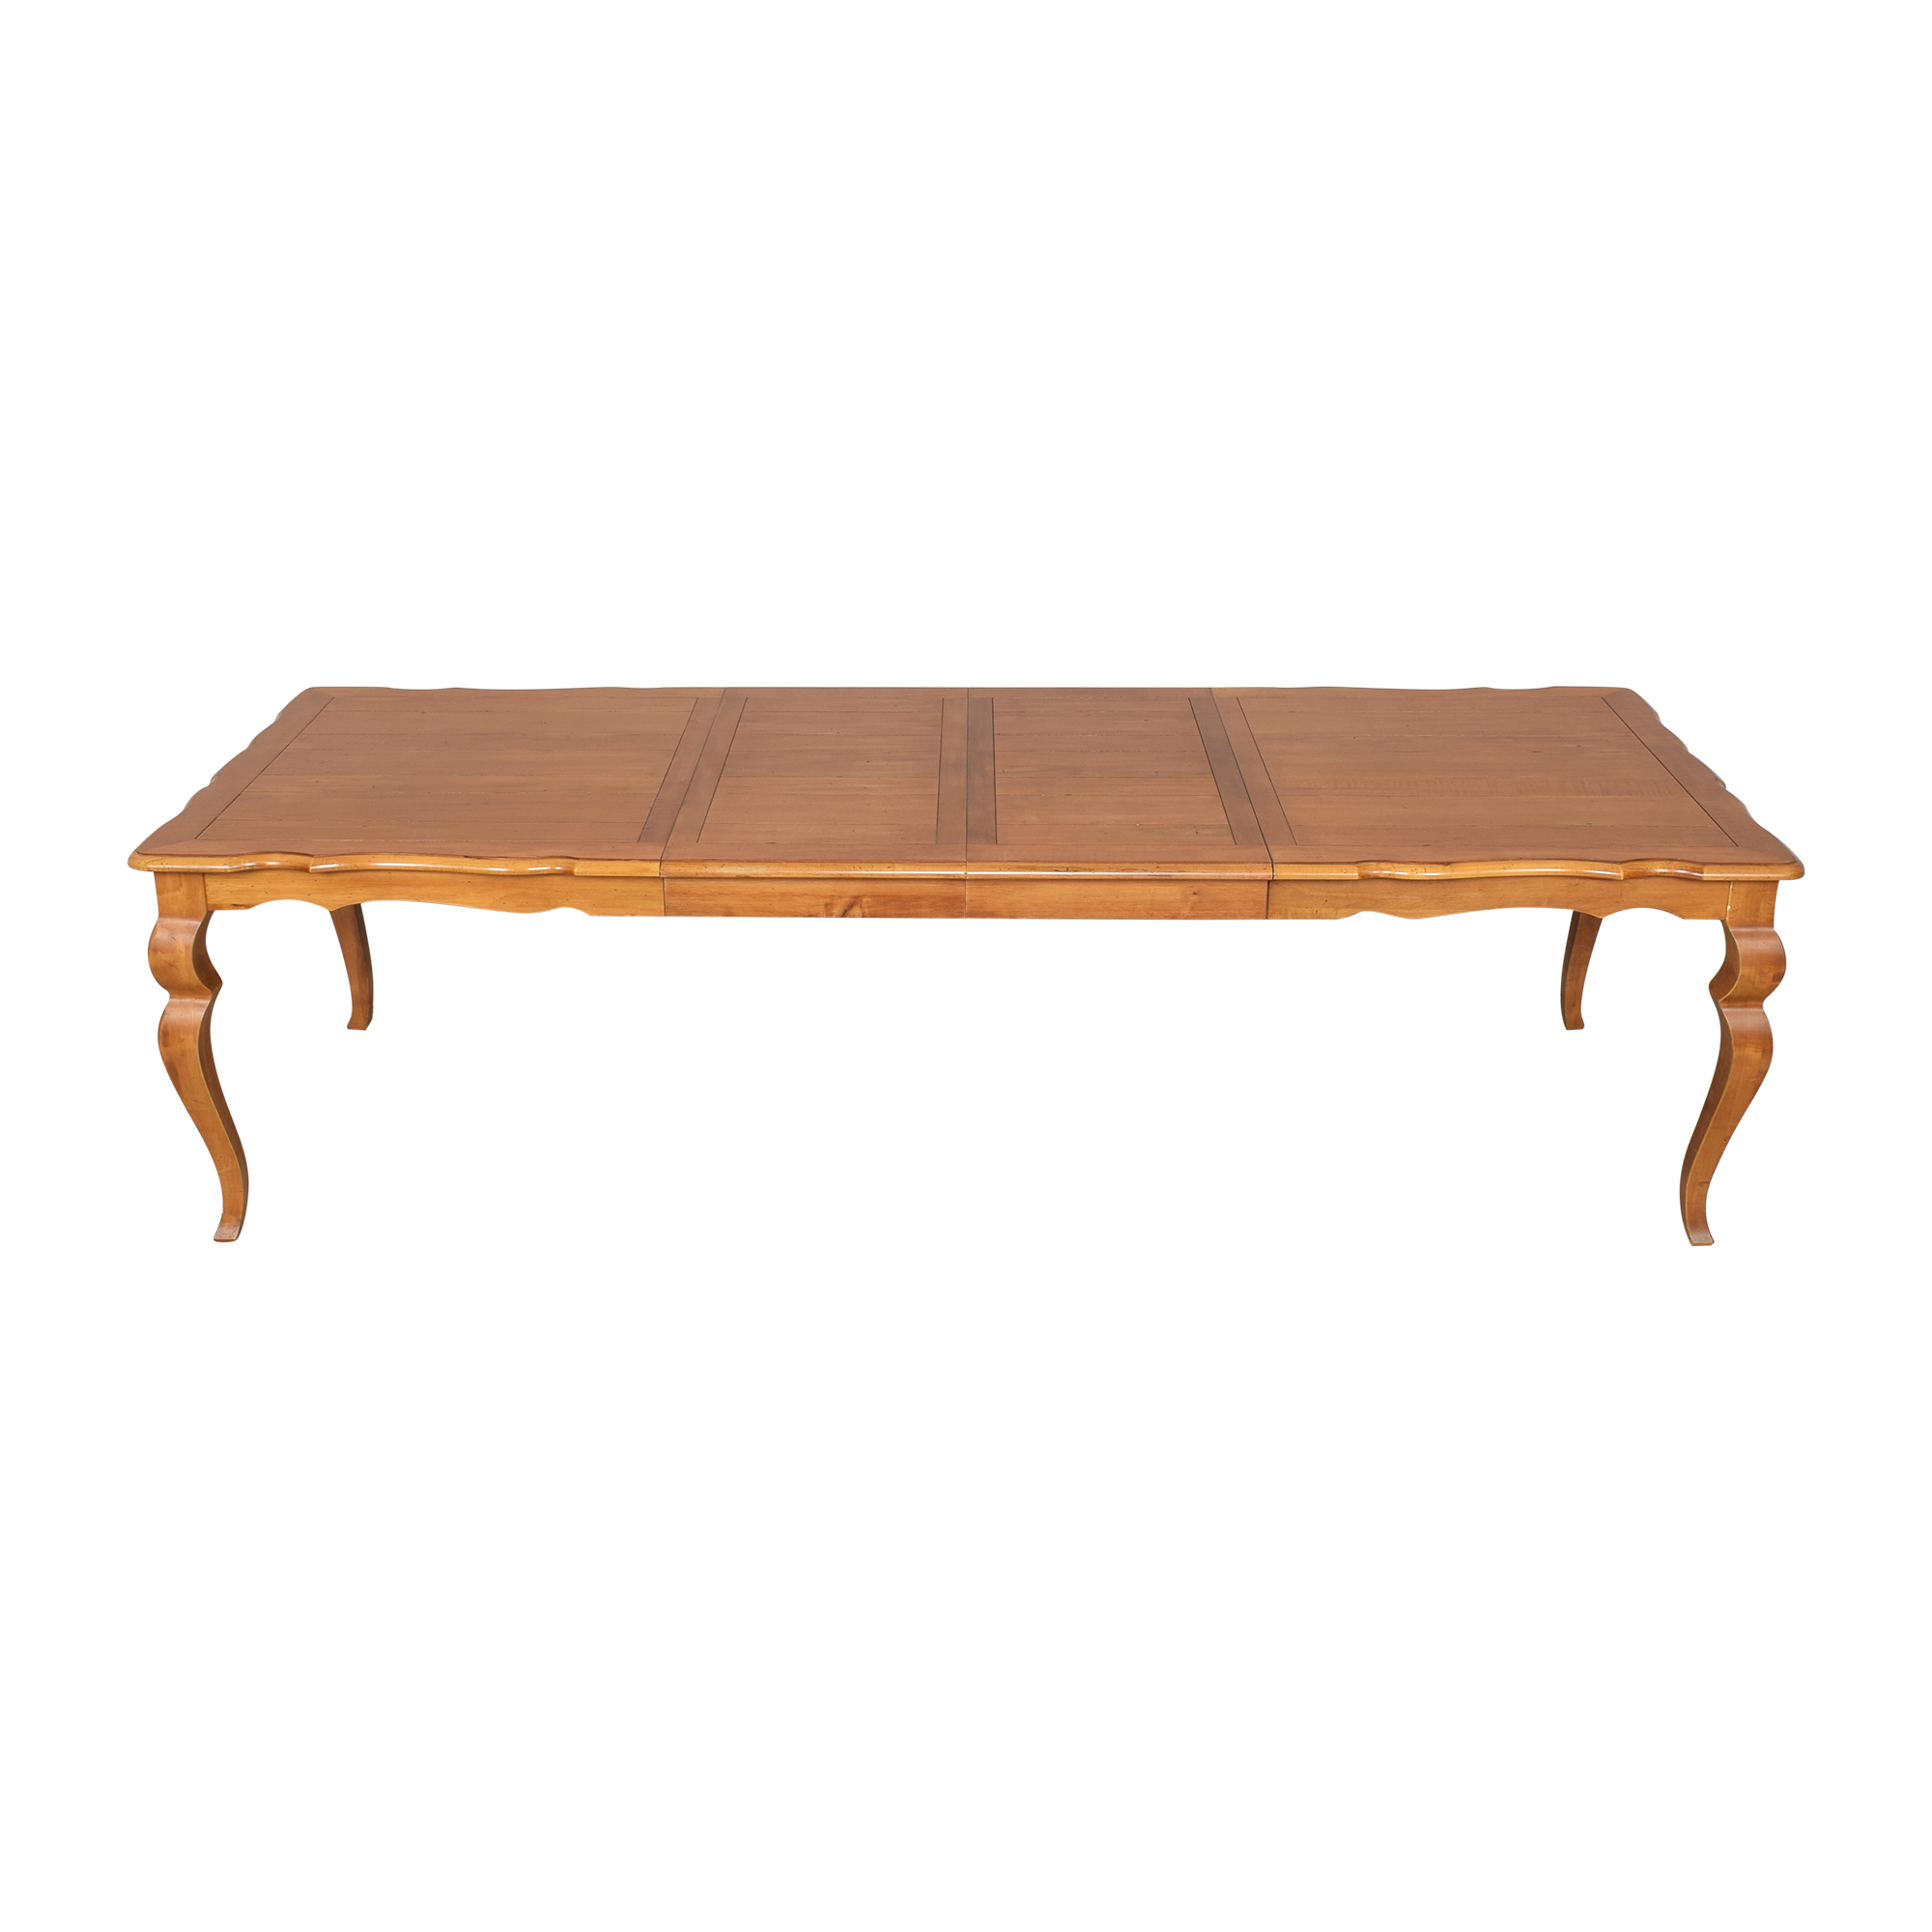 Ethan Allen Ethan Allen Legacy Dining Table discount